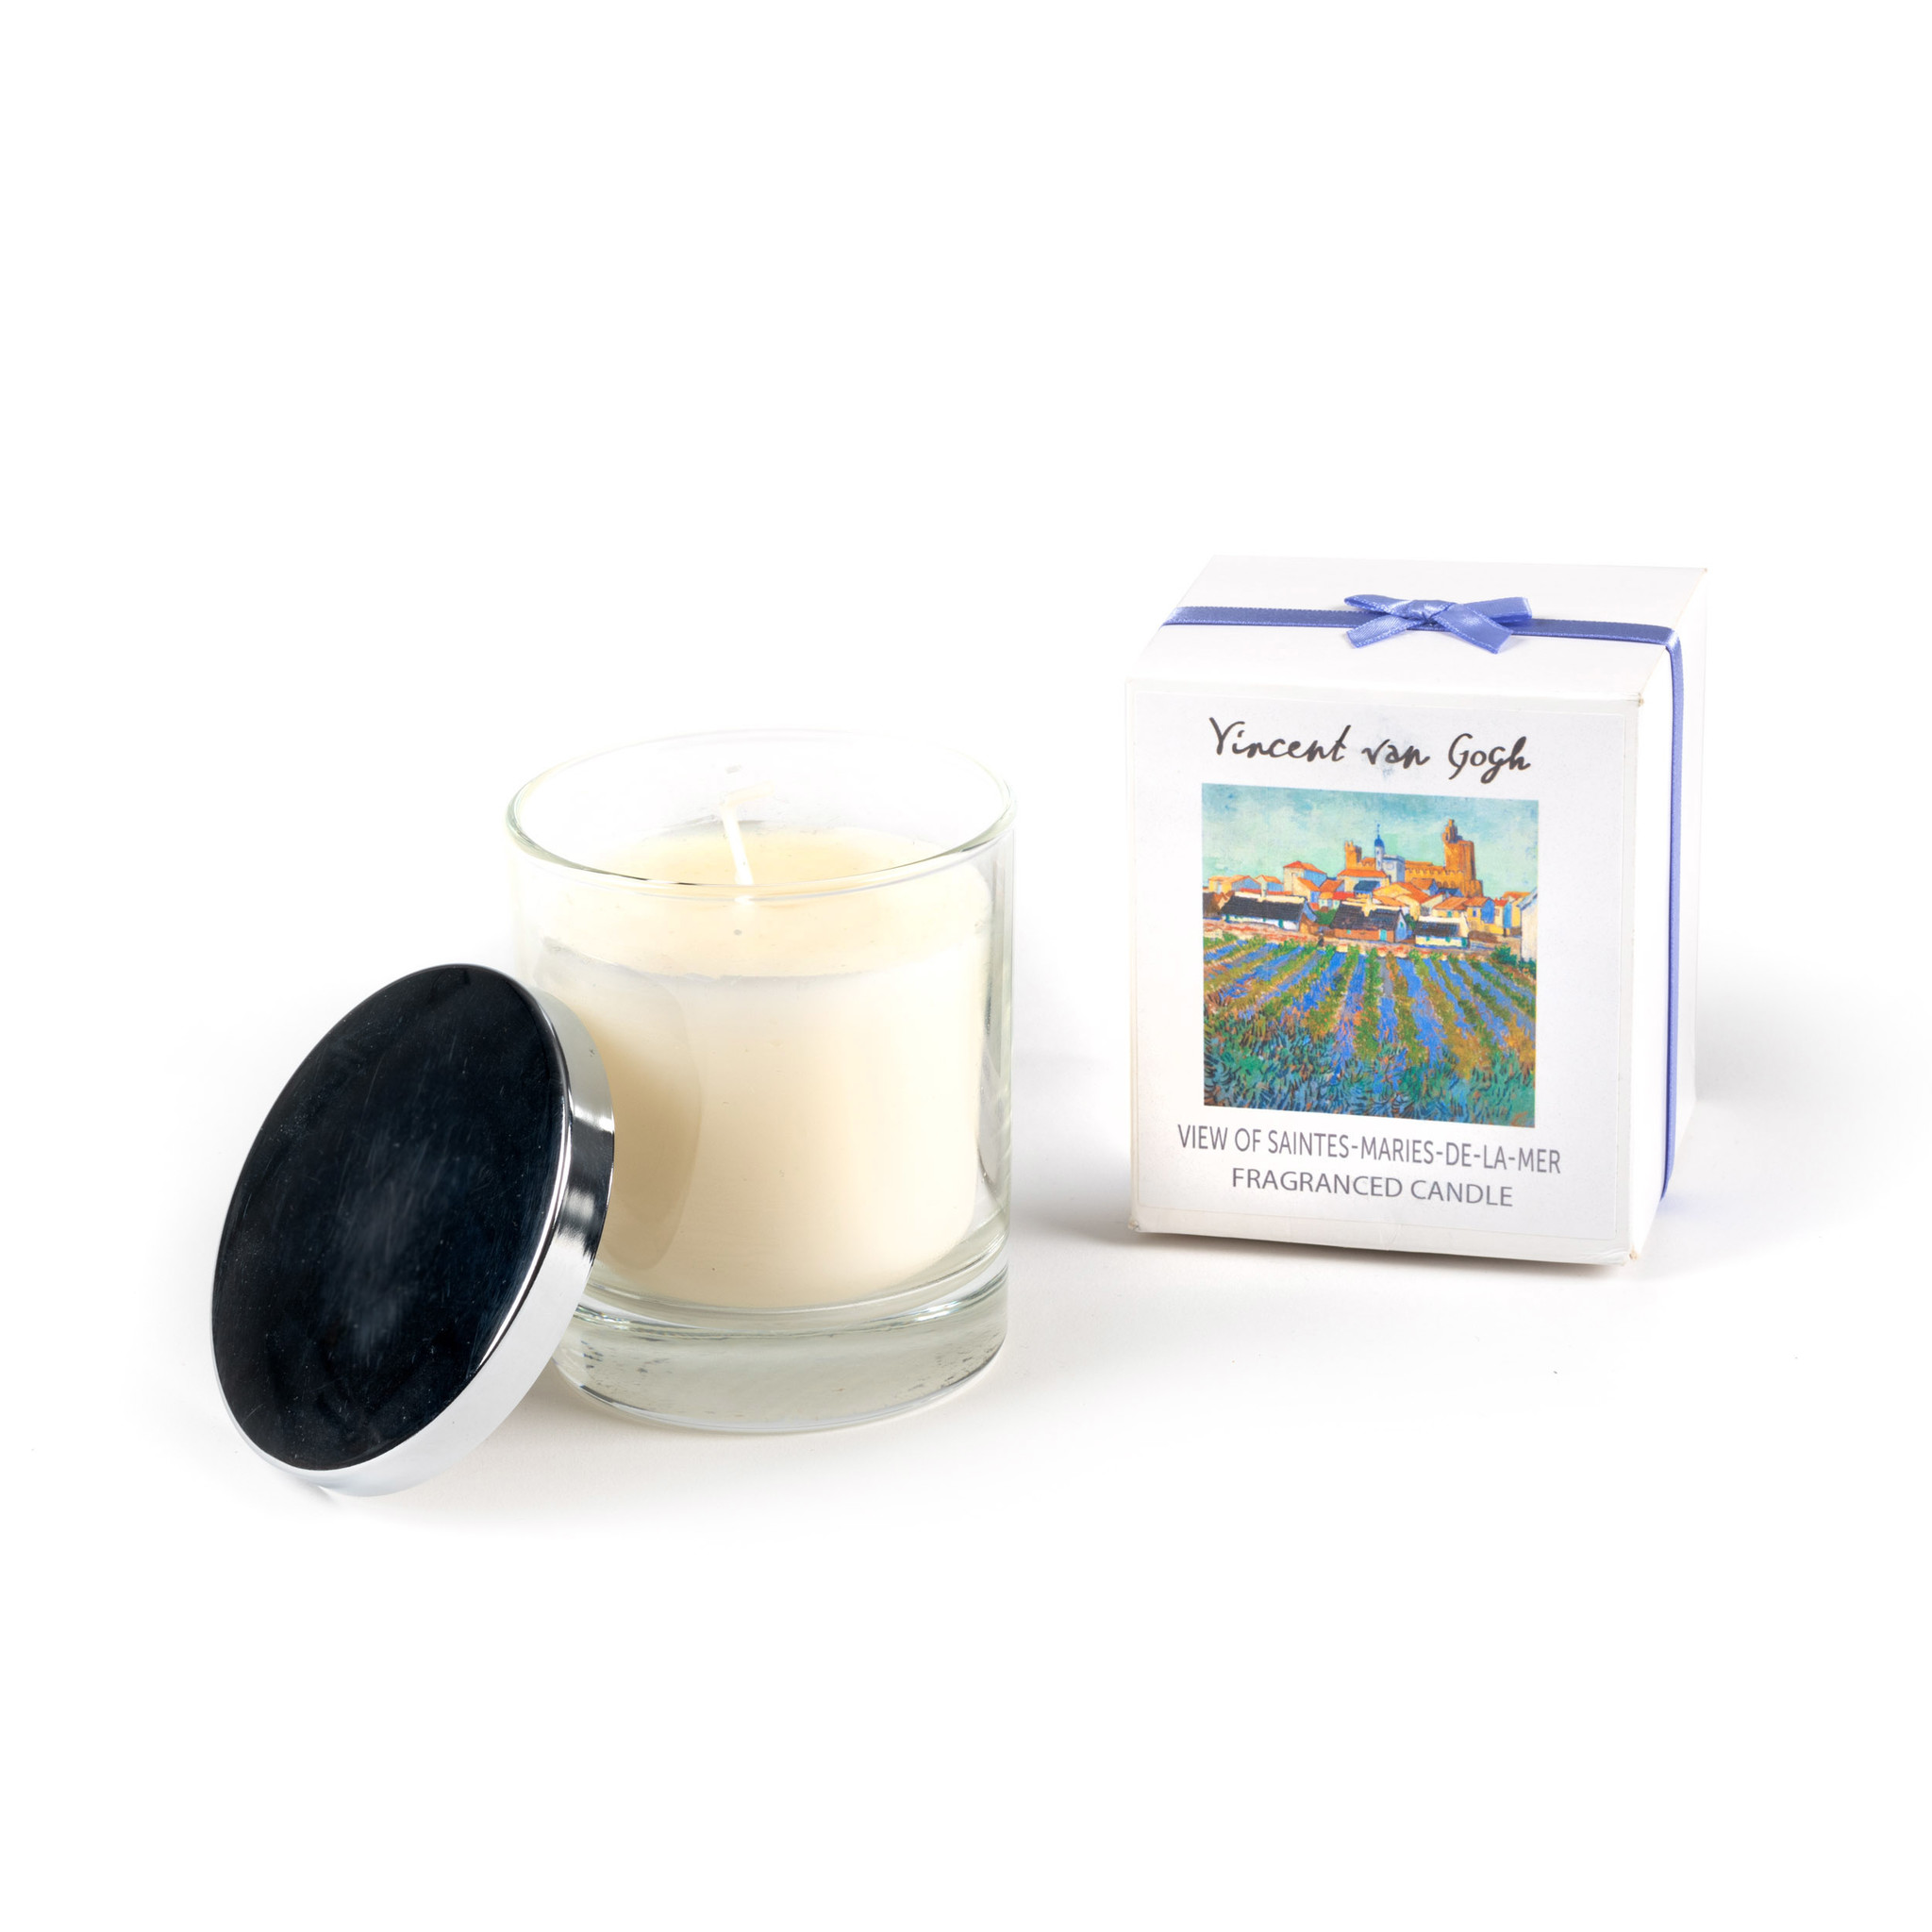 Scented candle Van Gogh